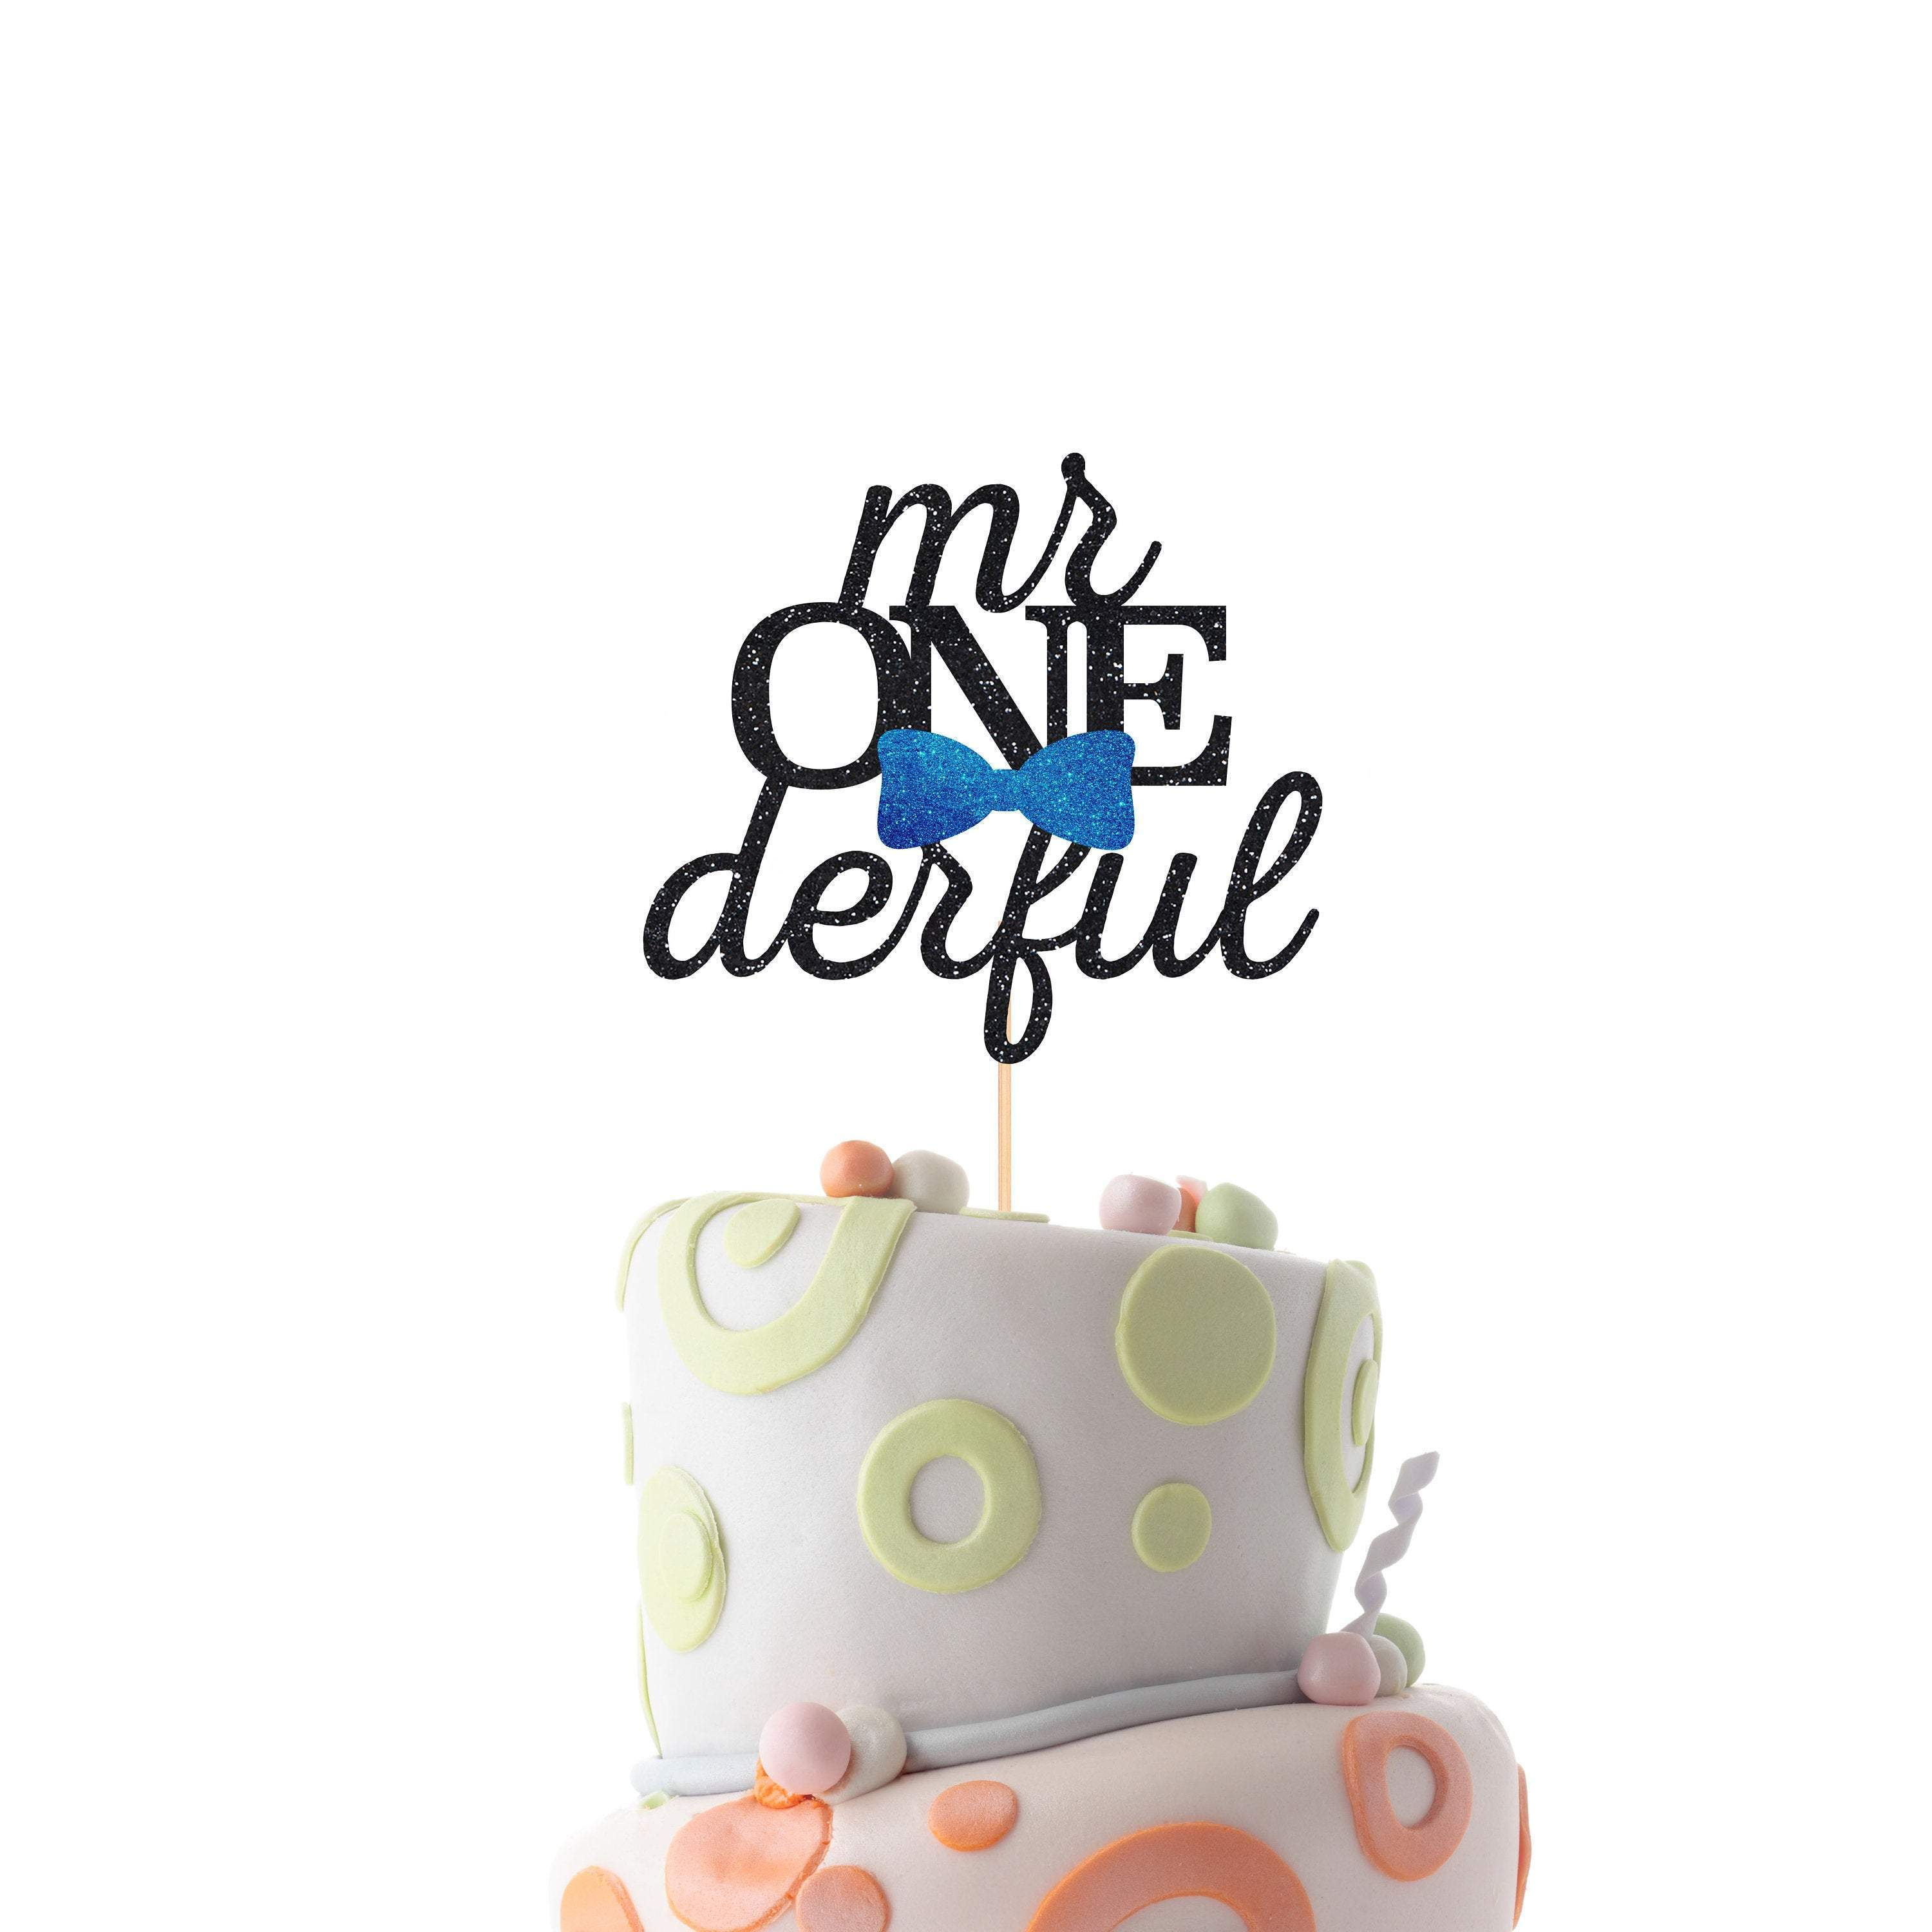 Wondrous Mr Onederful Cake Topper With Bow Tie Cute First Birthday Party Birthday Cards Printable Nowaargucafe Filternl